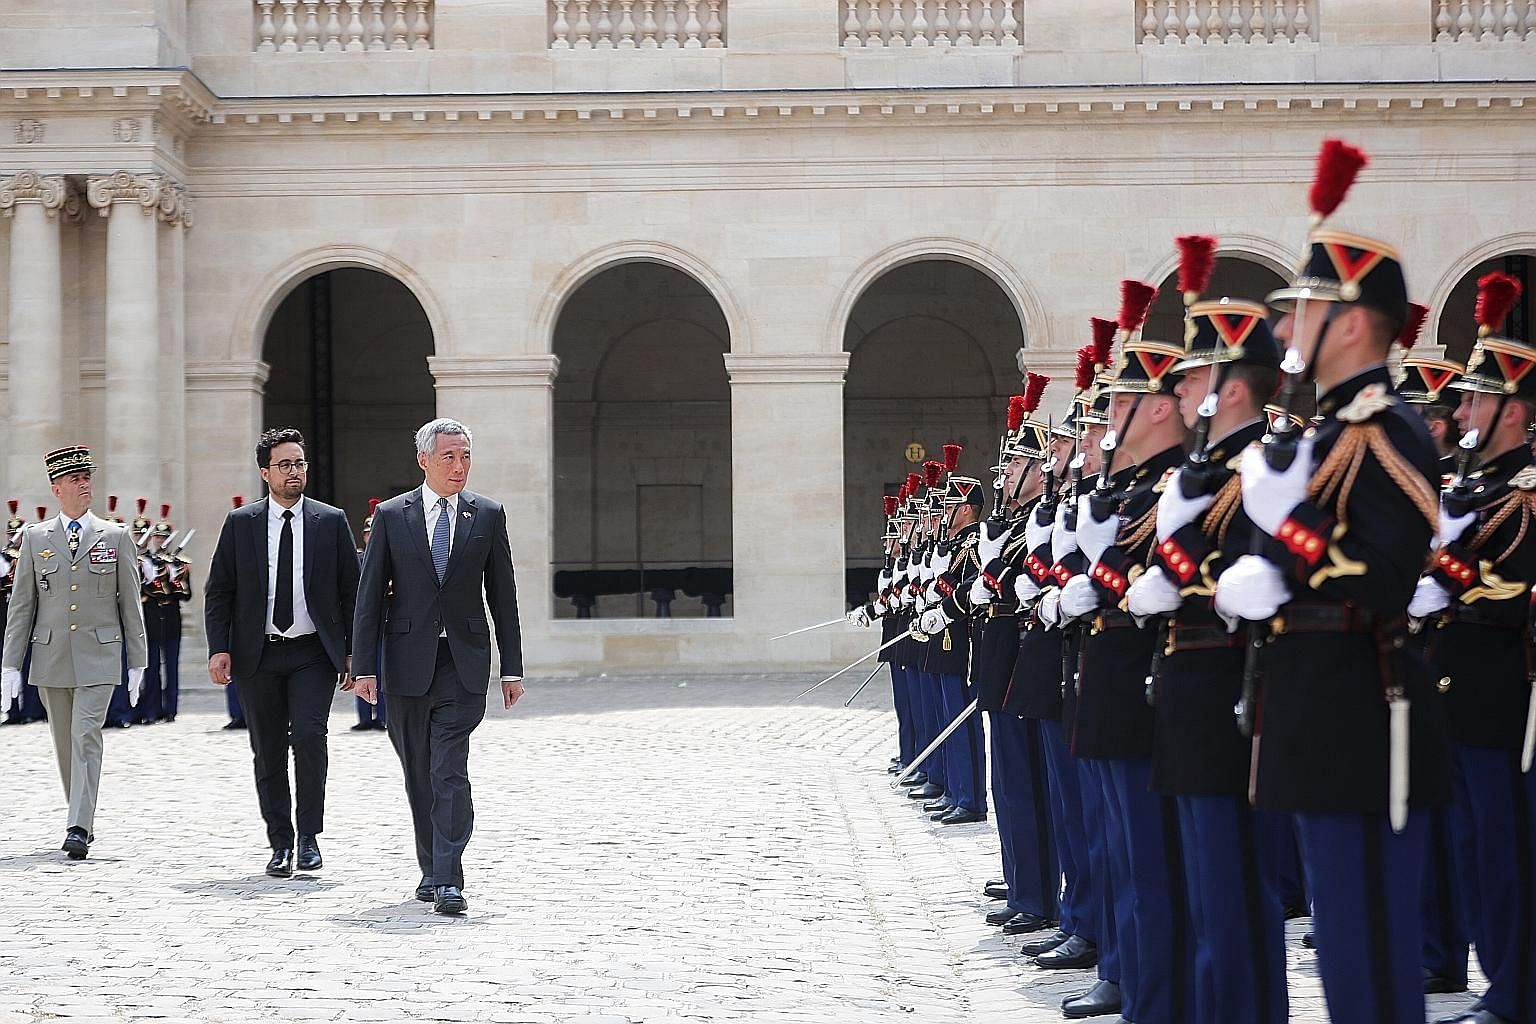 Prime Minister Lee Hsien Loong inspecting a guard of honour with France's Secretary of State for Digital Affairs Mounir Mahjoubi yesterday in Paris. He is in France at the invitation of French President Emmanuel Macron.